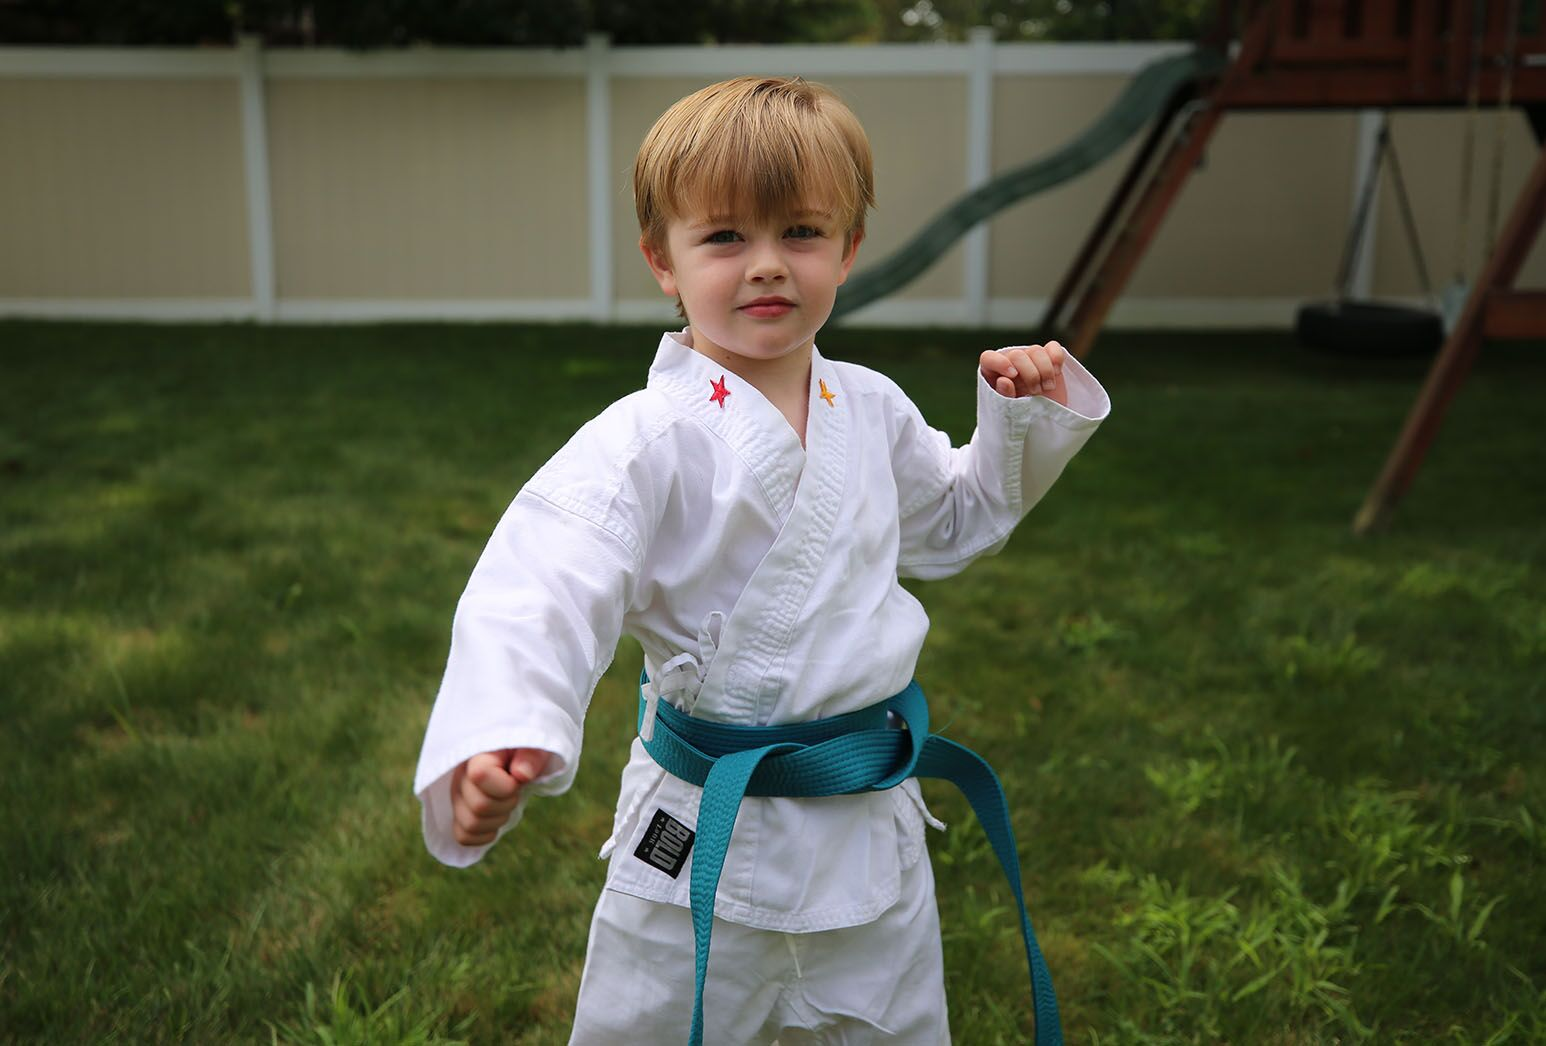 Young boy with blond hair practicing karate outside in a white karate uniform and green belt.